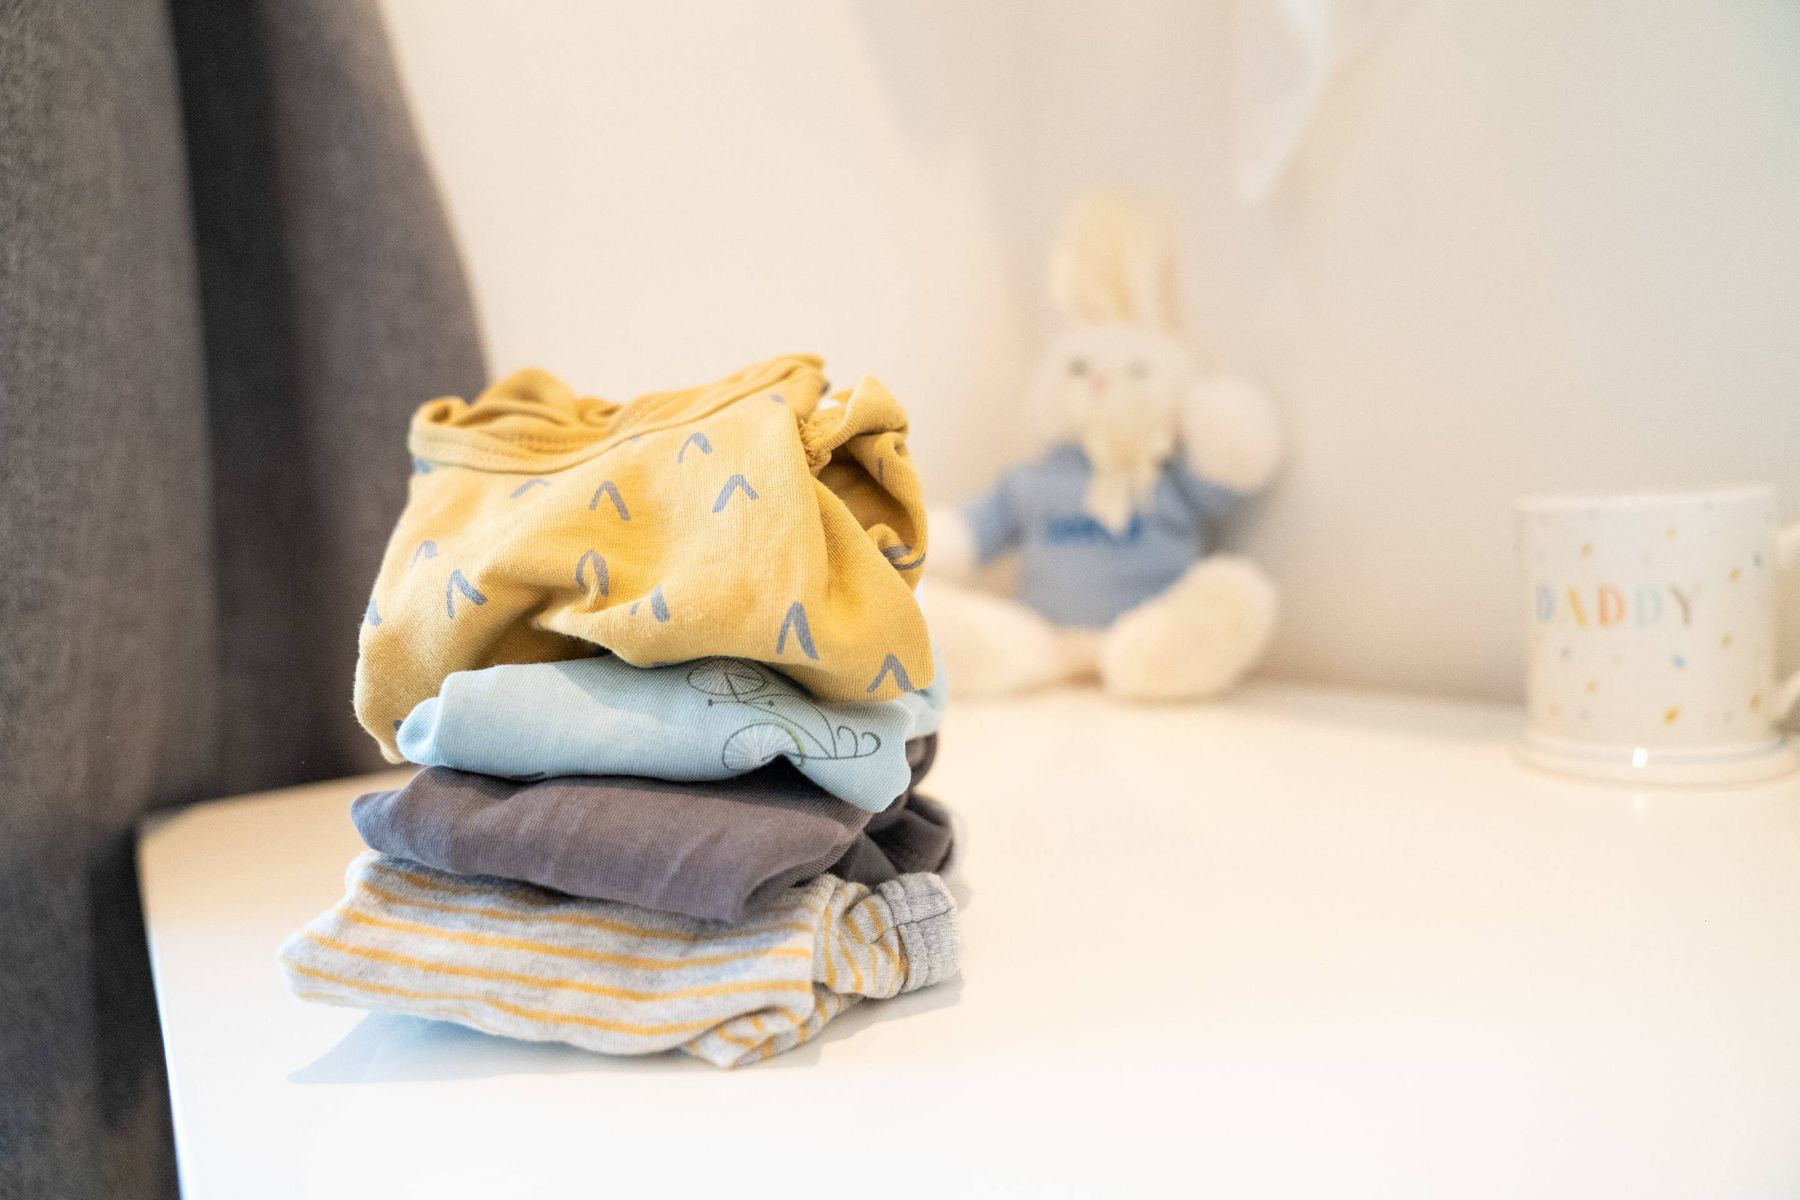 a pile of folded clothes next to a toy